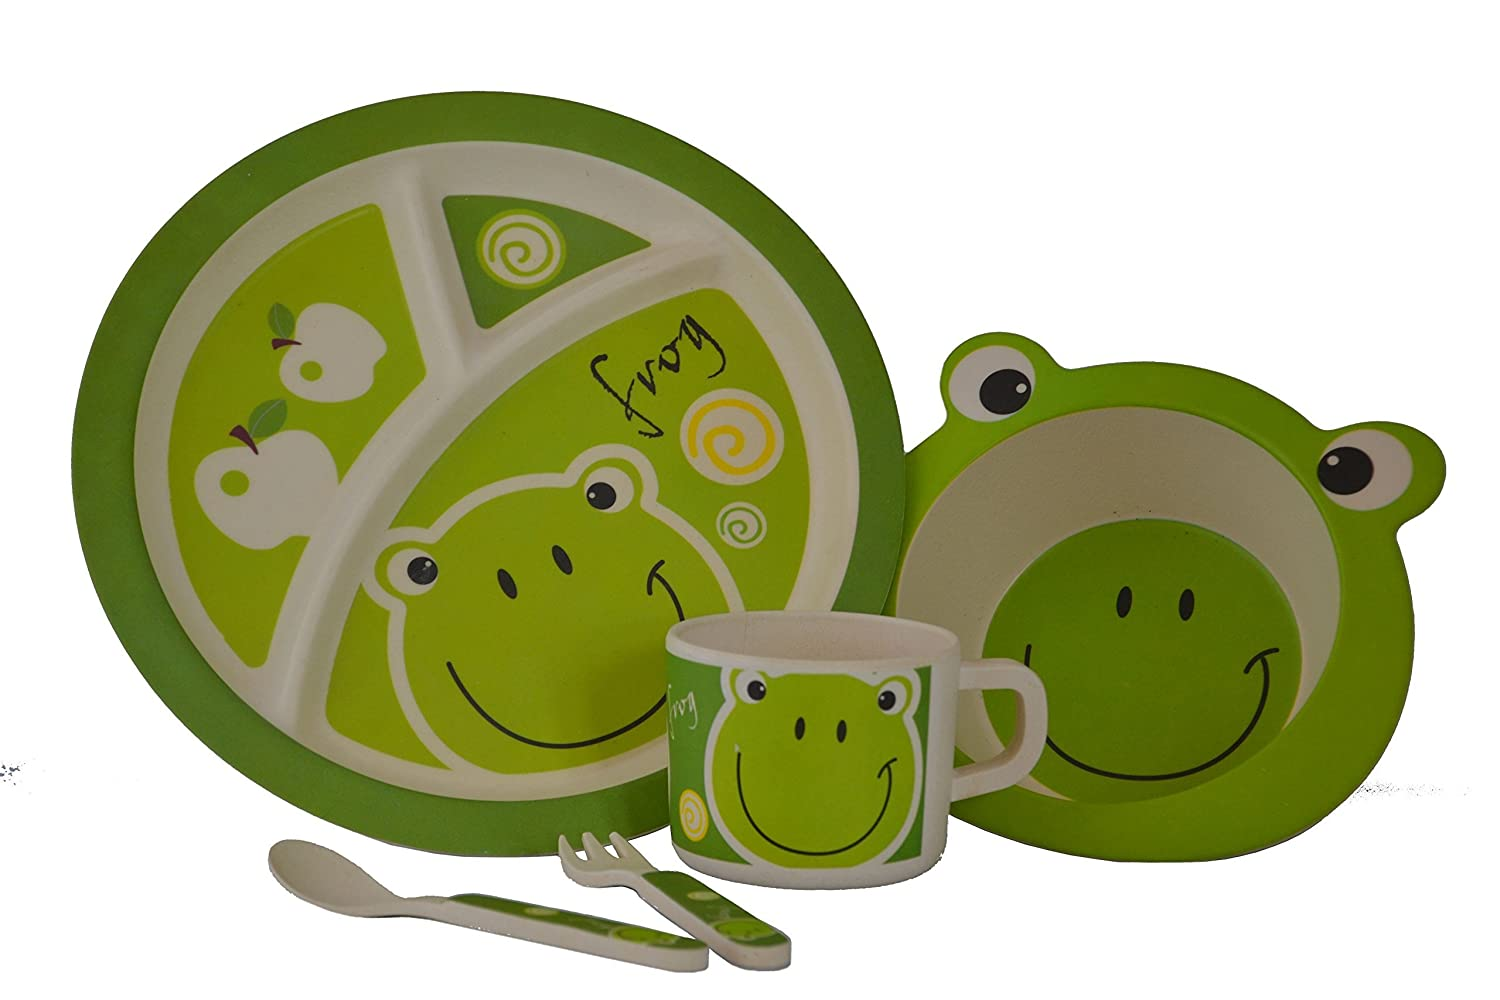 Baby, Toddler & Child friendly 5 Piece Dinner Set: Eco-friendly Bamboo Fibre Dining Set in Frog Design by Mini Mumbler® | Tableware | Dinnerware | Mealtimes | Weaning | Self-Feeding | Independence